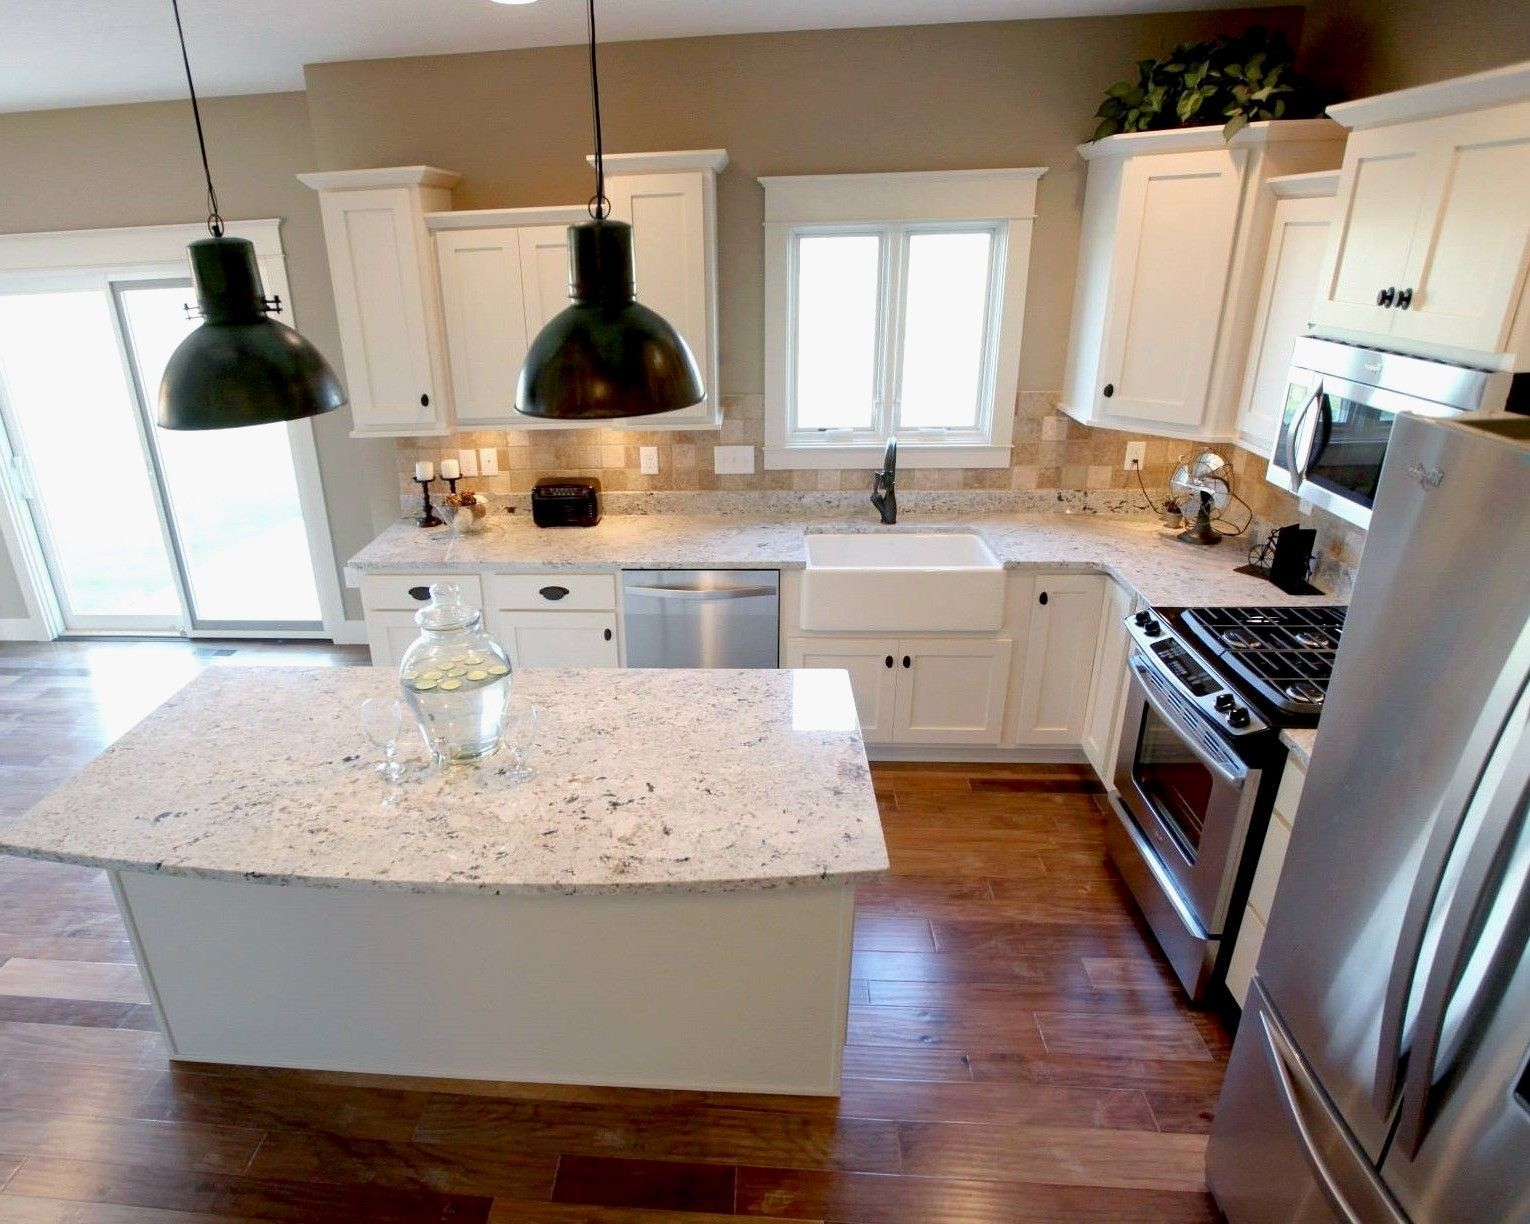 25 fascinating kitchen layout ideas a guide for kitchen designs small kitchen layouts on kitchen remodel ideas id=33328